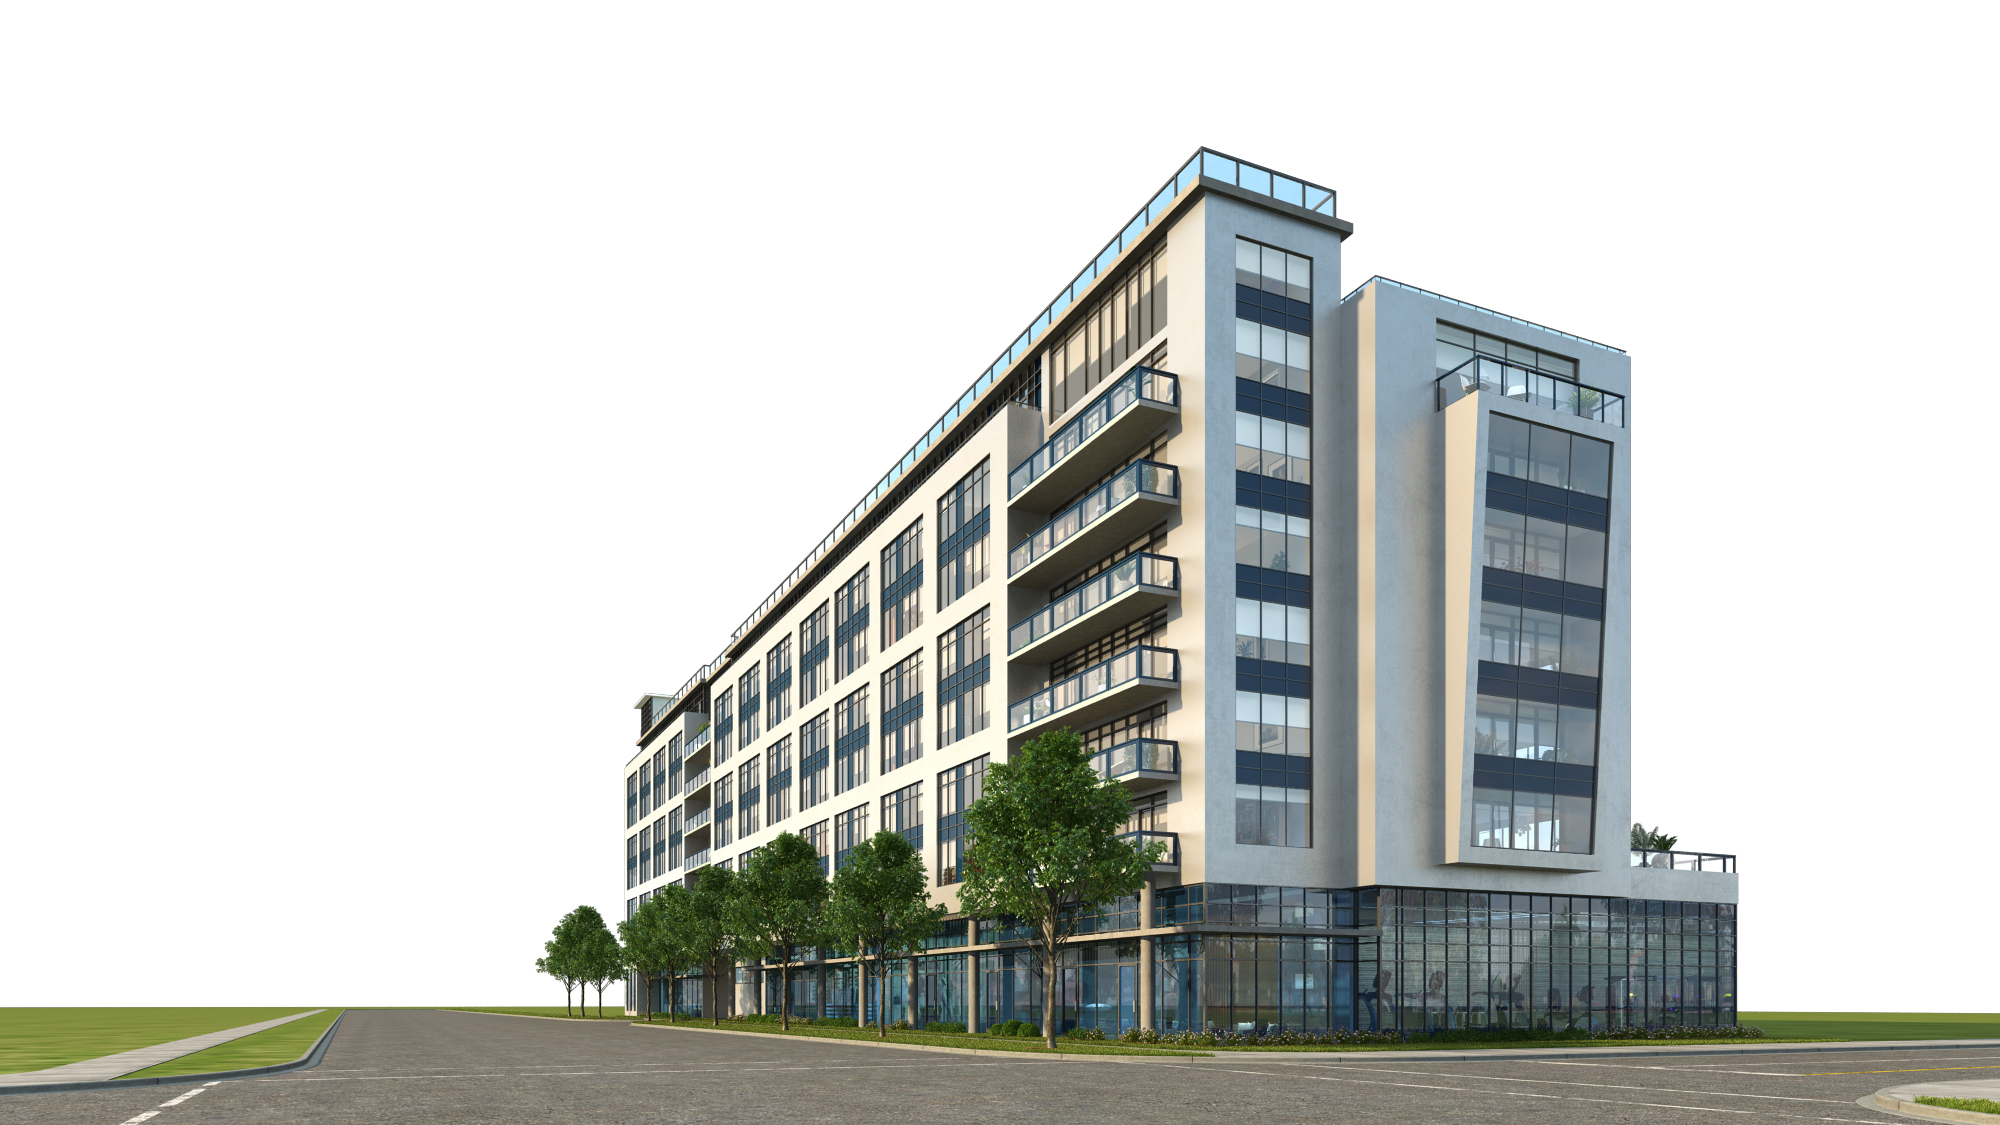 93-101 Columbia Street West, Waterloo | High Profile Redevelopment Site